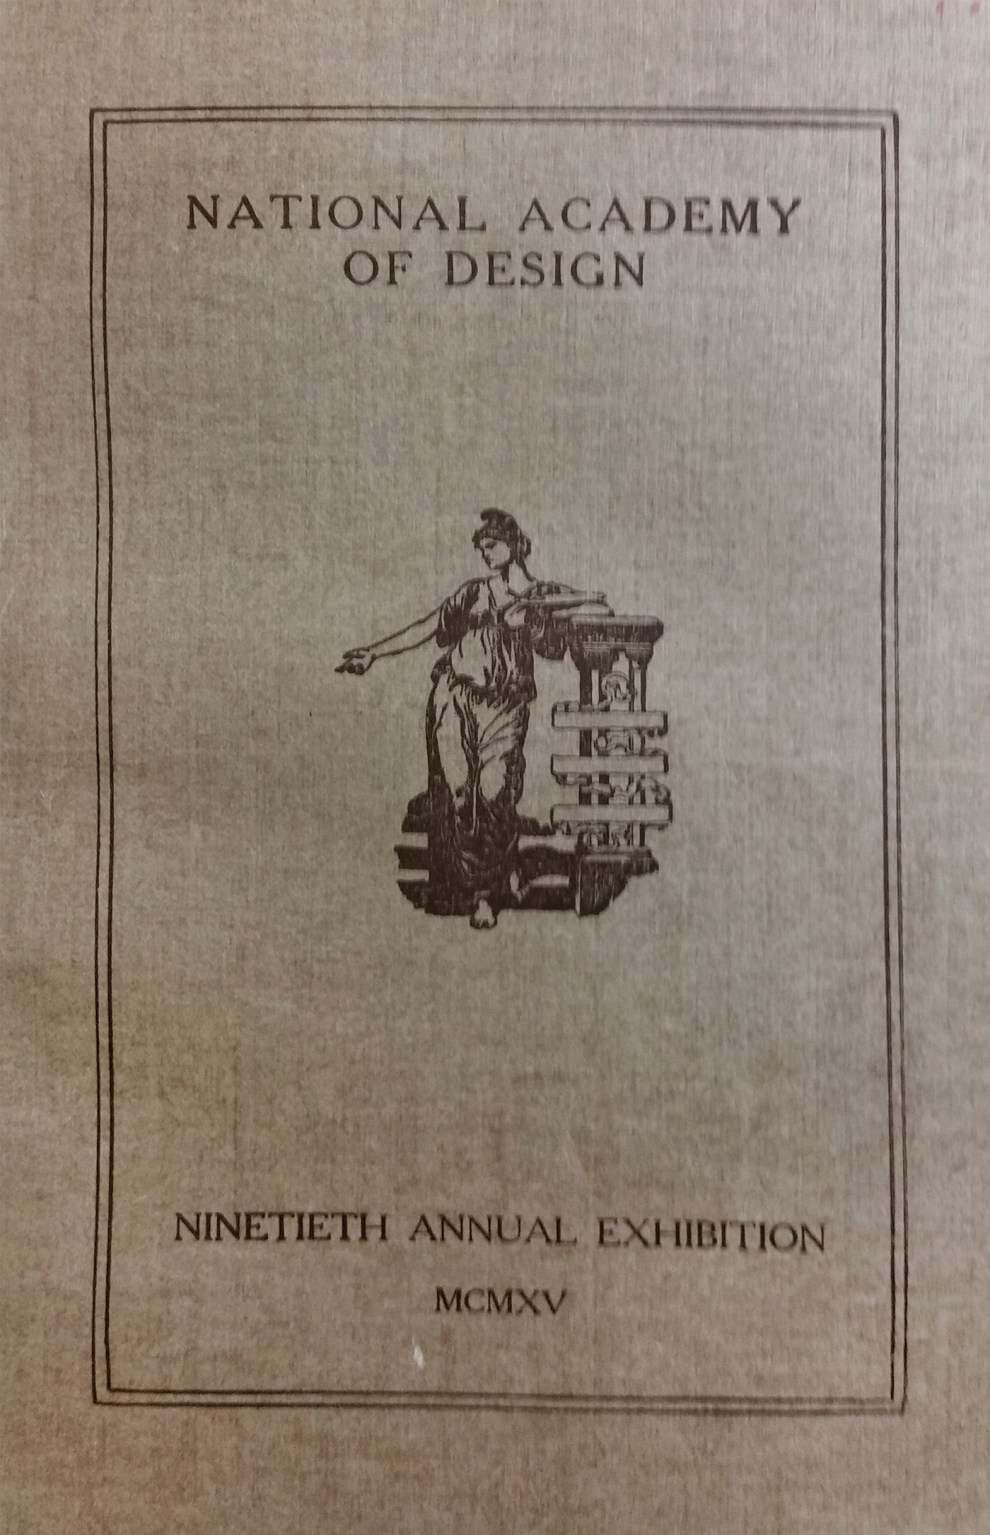 """1915 National Academy of Design, New York, NY, """"Ninetieth Annual Exhibition"""", March 20 - April 25"""